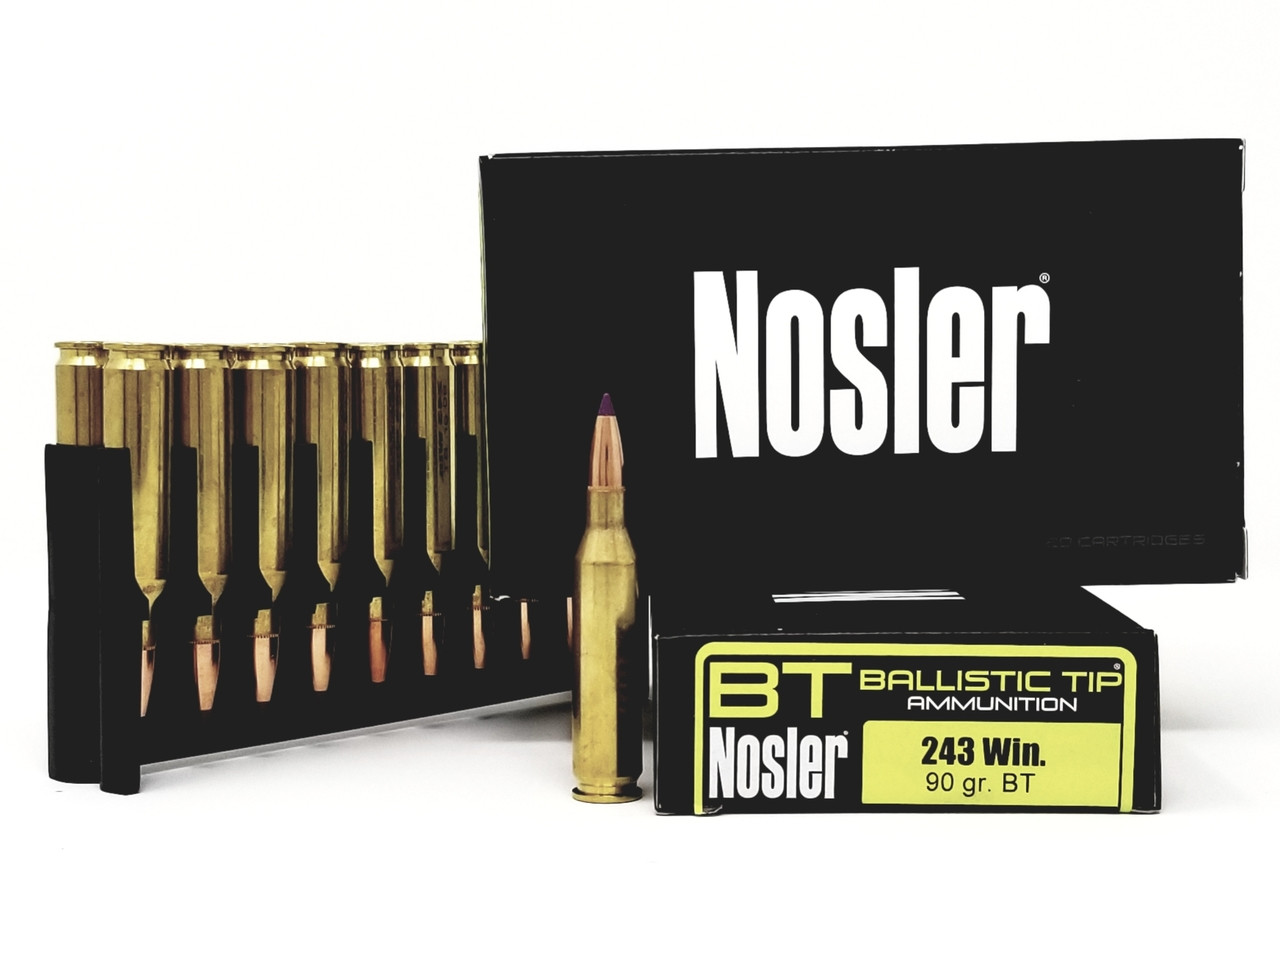 Nosler 243 Win Ammunition 40050 90 Grain Ballistic Tip 20 Rounds - Free Shipping with Buyer's Club! title=